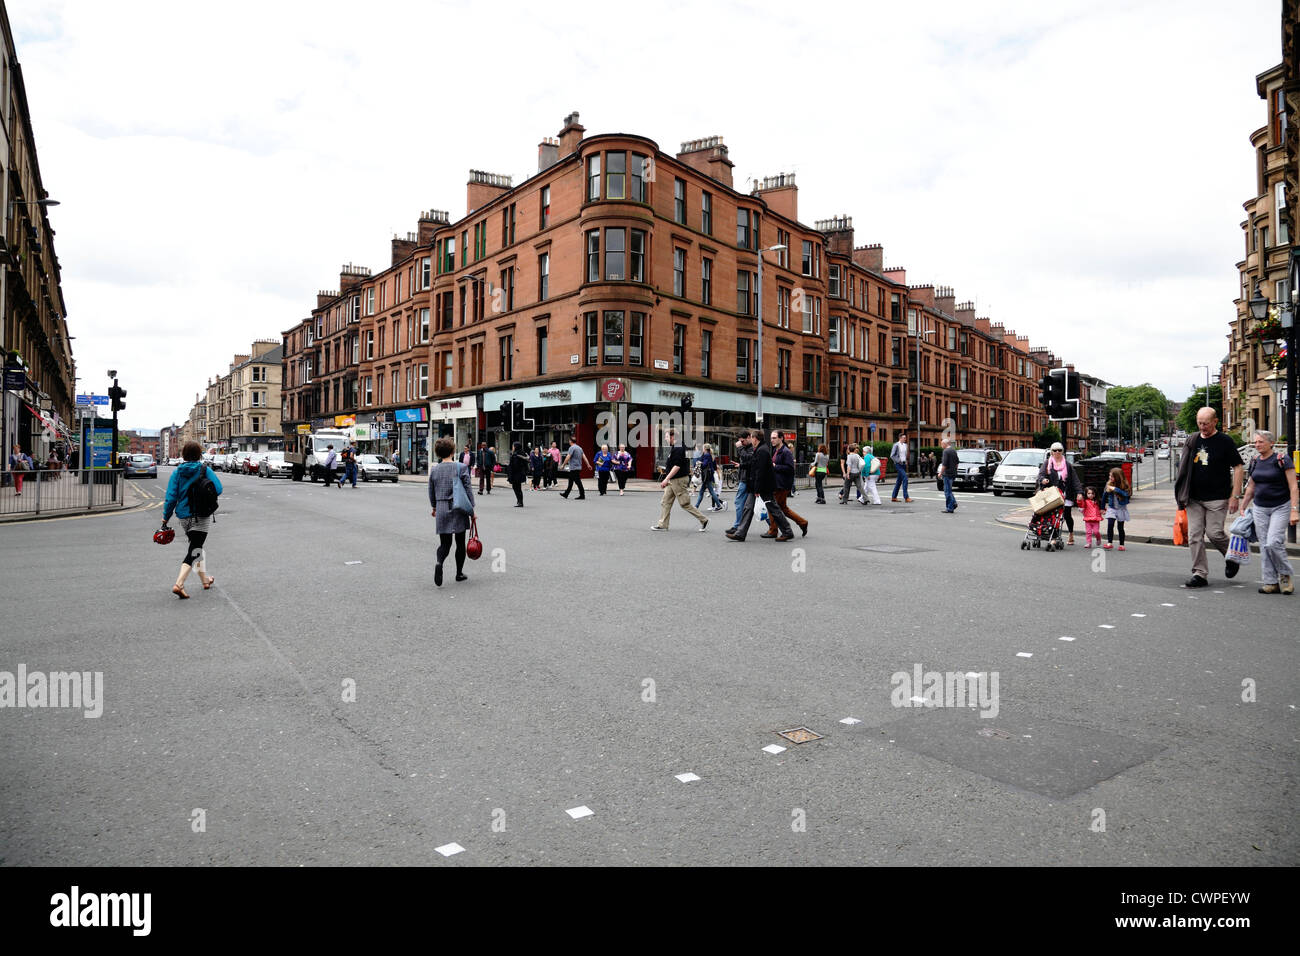 Pedestrians crossing Byres Road in the West End of Glasgow, Scotland, UK - Stock Image